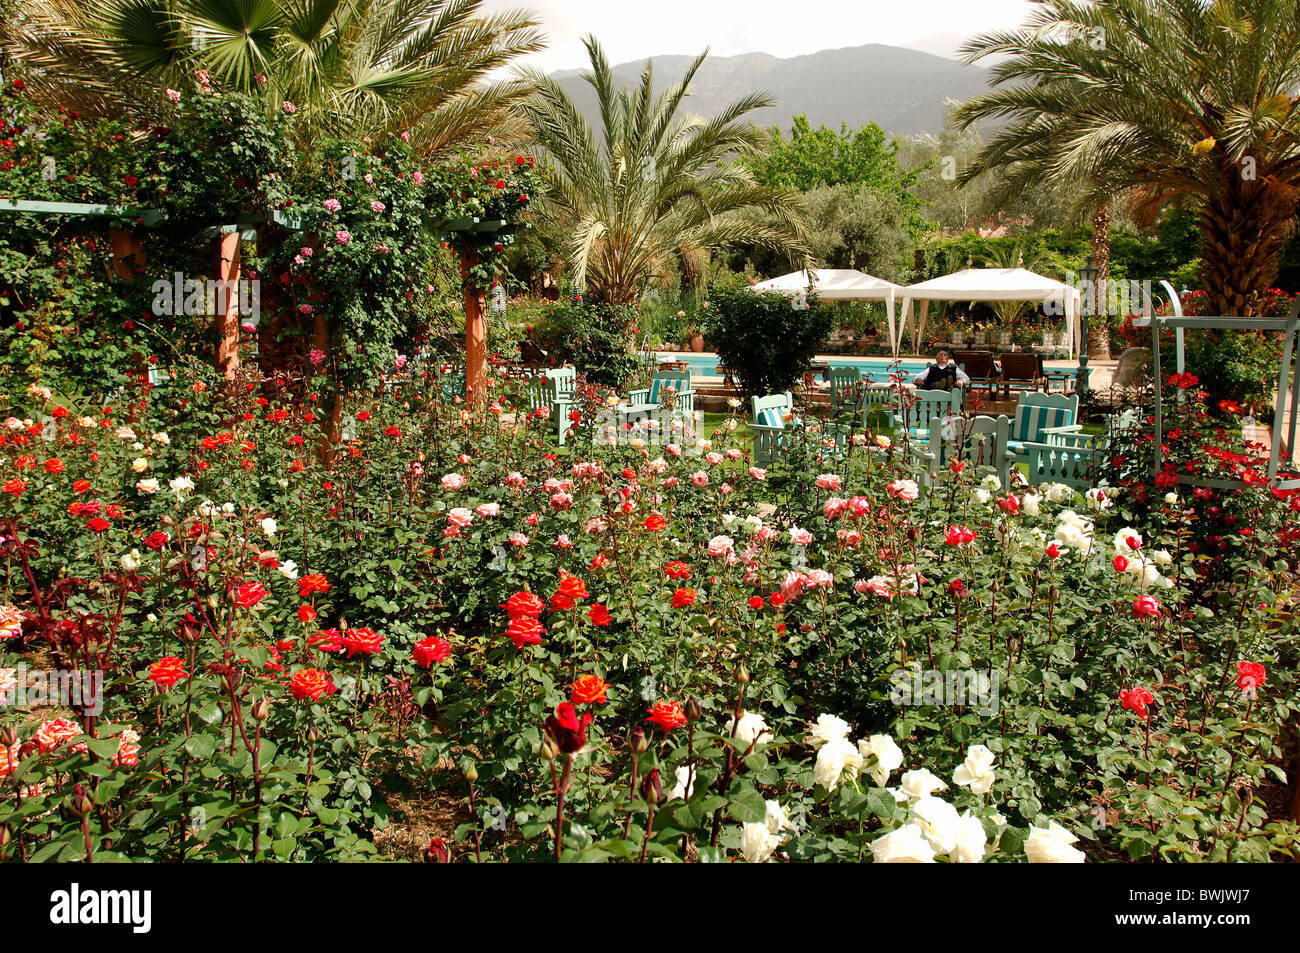 Good Hotel Domaine De La Roseraie Outside Garden Flowers Palms Tourism Douia  Crudely Ouirgane Morocco Africa North Africa